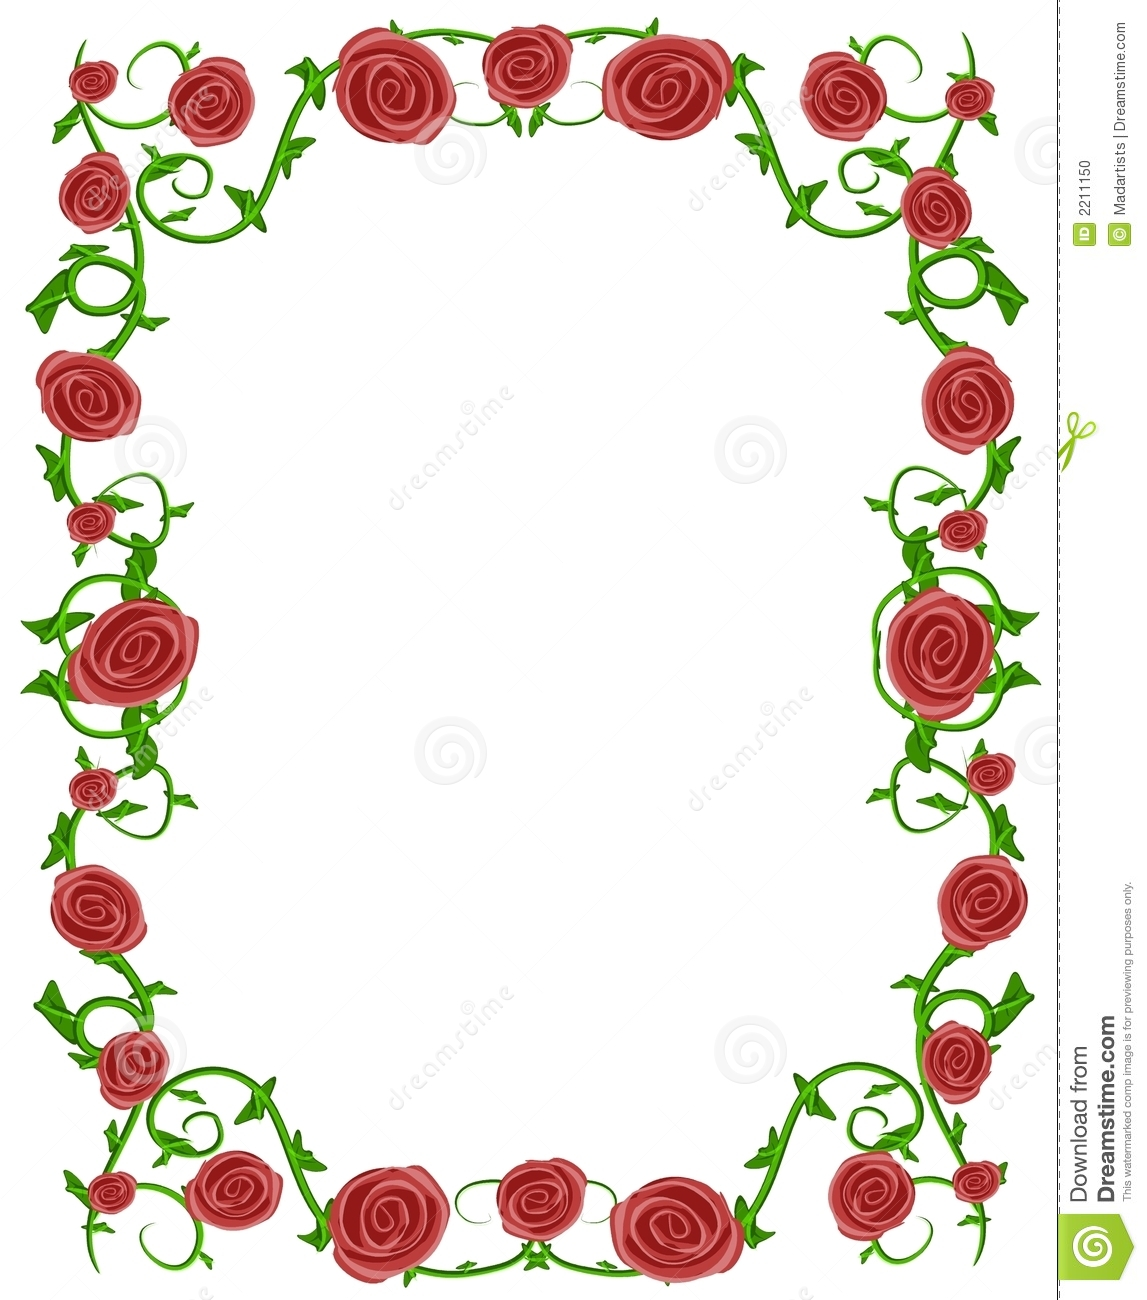 Floral clipart rose border Clipart Pink Images Clip Free